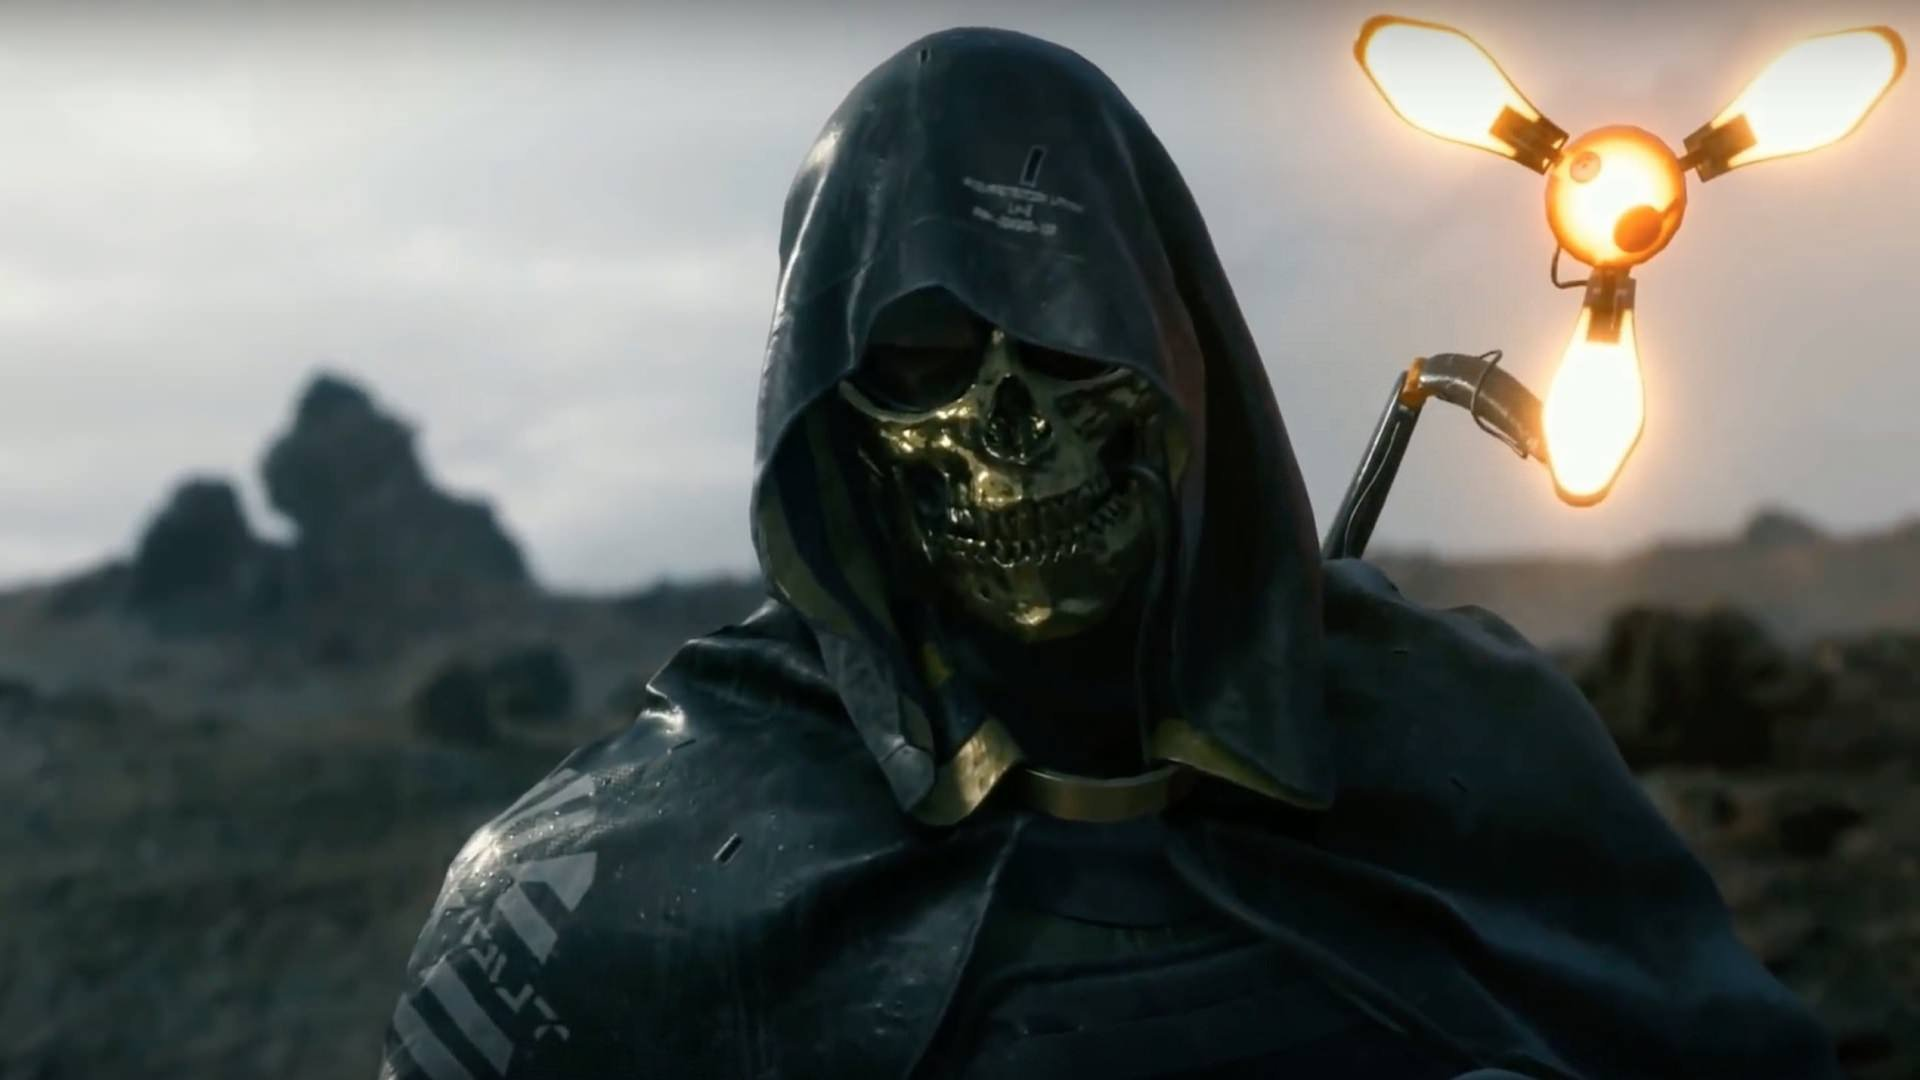 Hideo Kojima Releases Death Stranding Teaser - Is a New Trailer Coming?